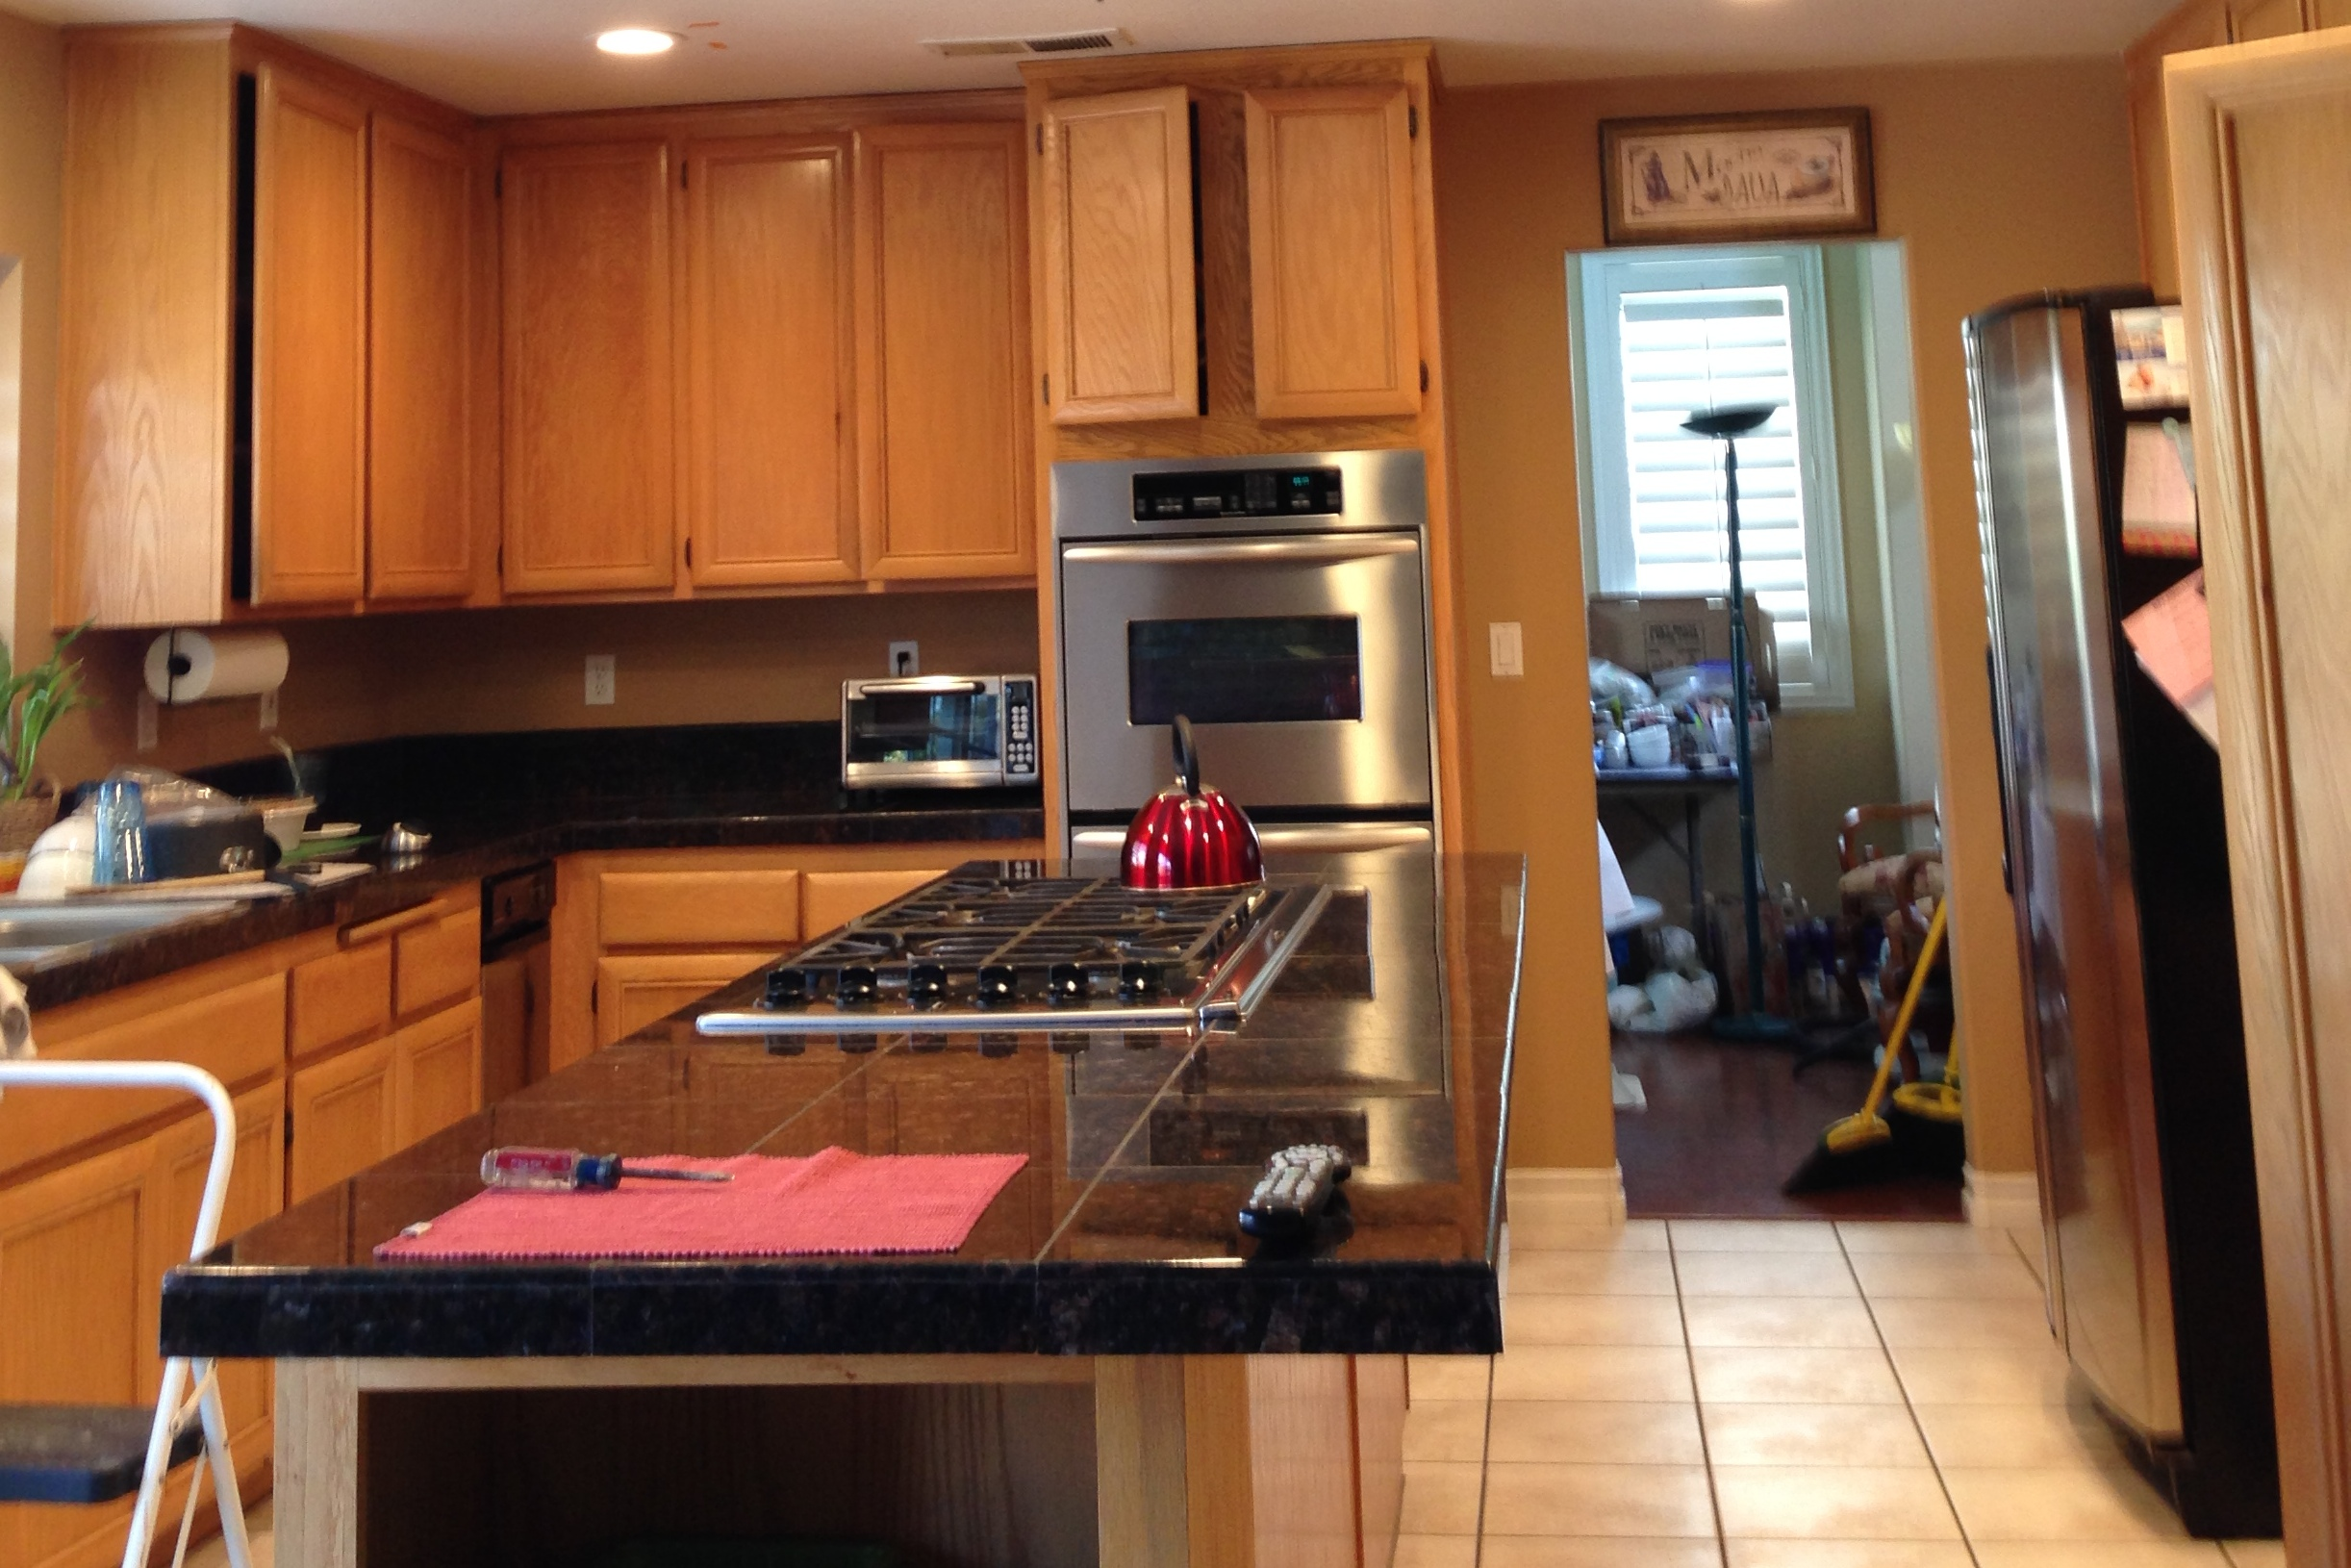 Kitchen cabinets paint job residential oxnard california for Kitchen cabinets gold coast